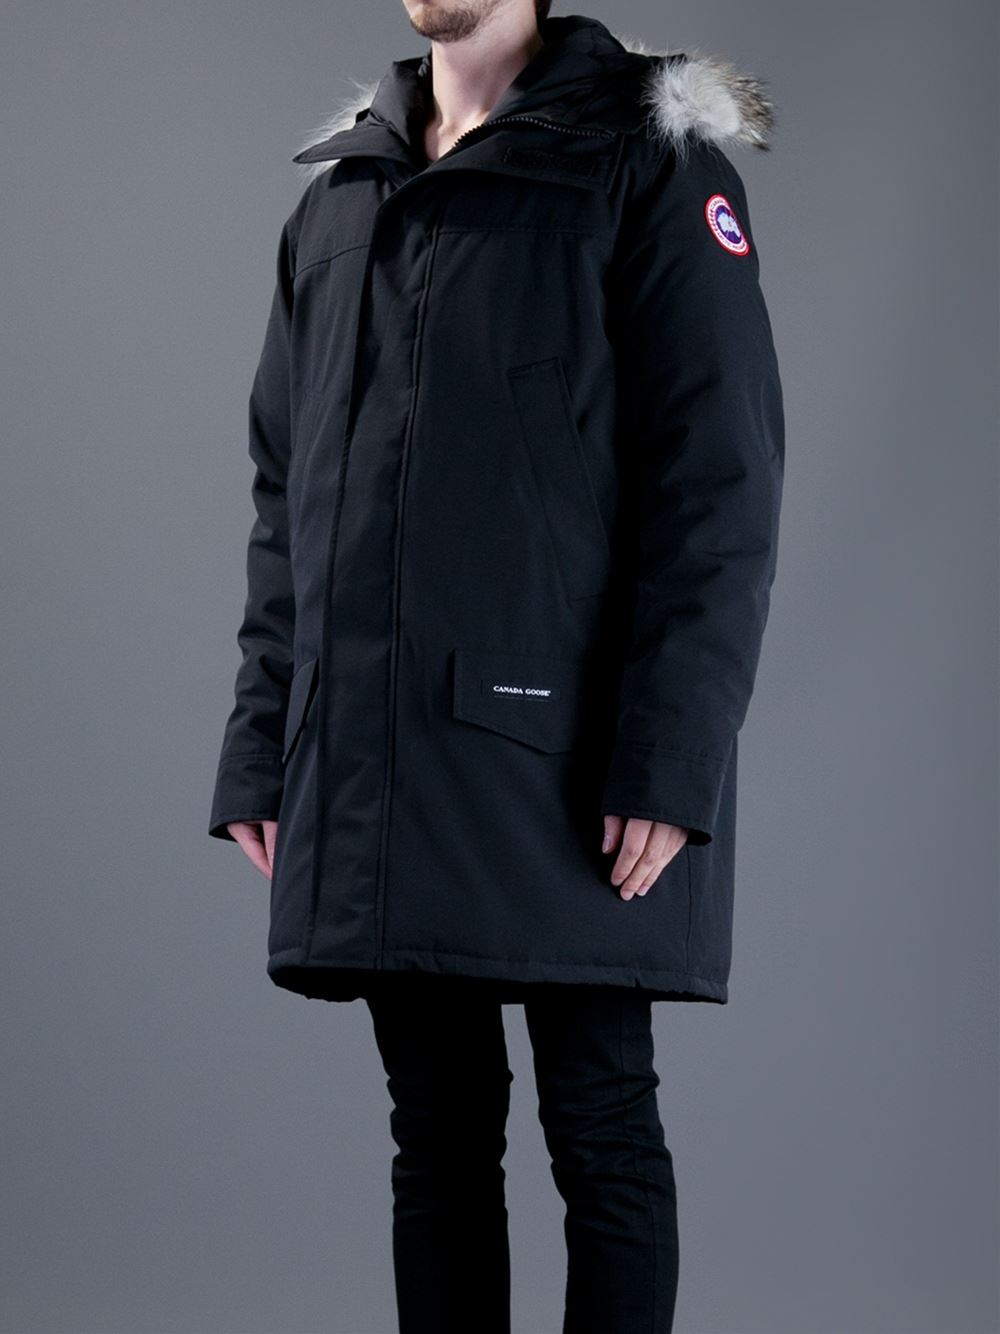 Canada Goose langford parka replica authentic - Canada goose 'Langford' Parka in Black for Men | Lyst